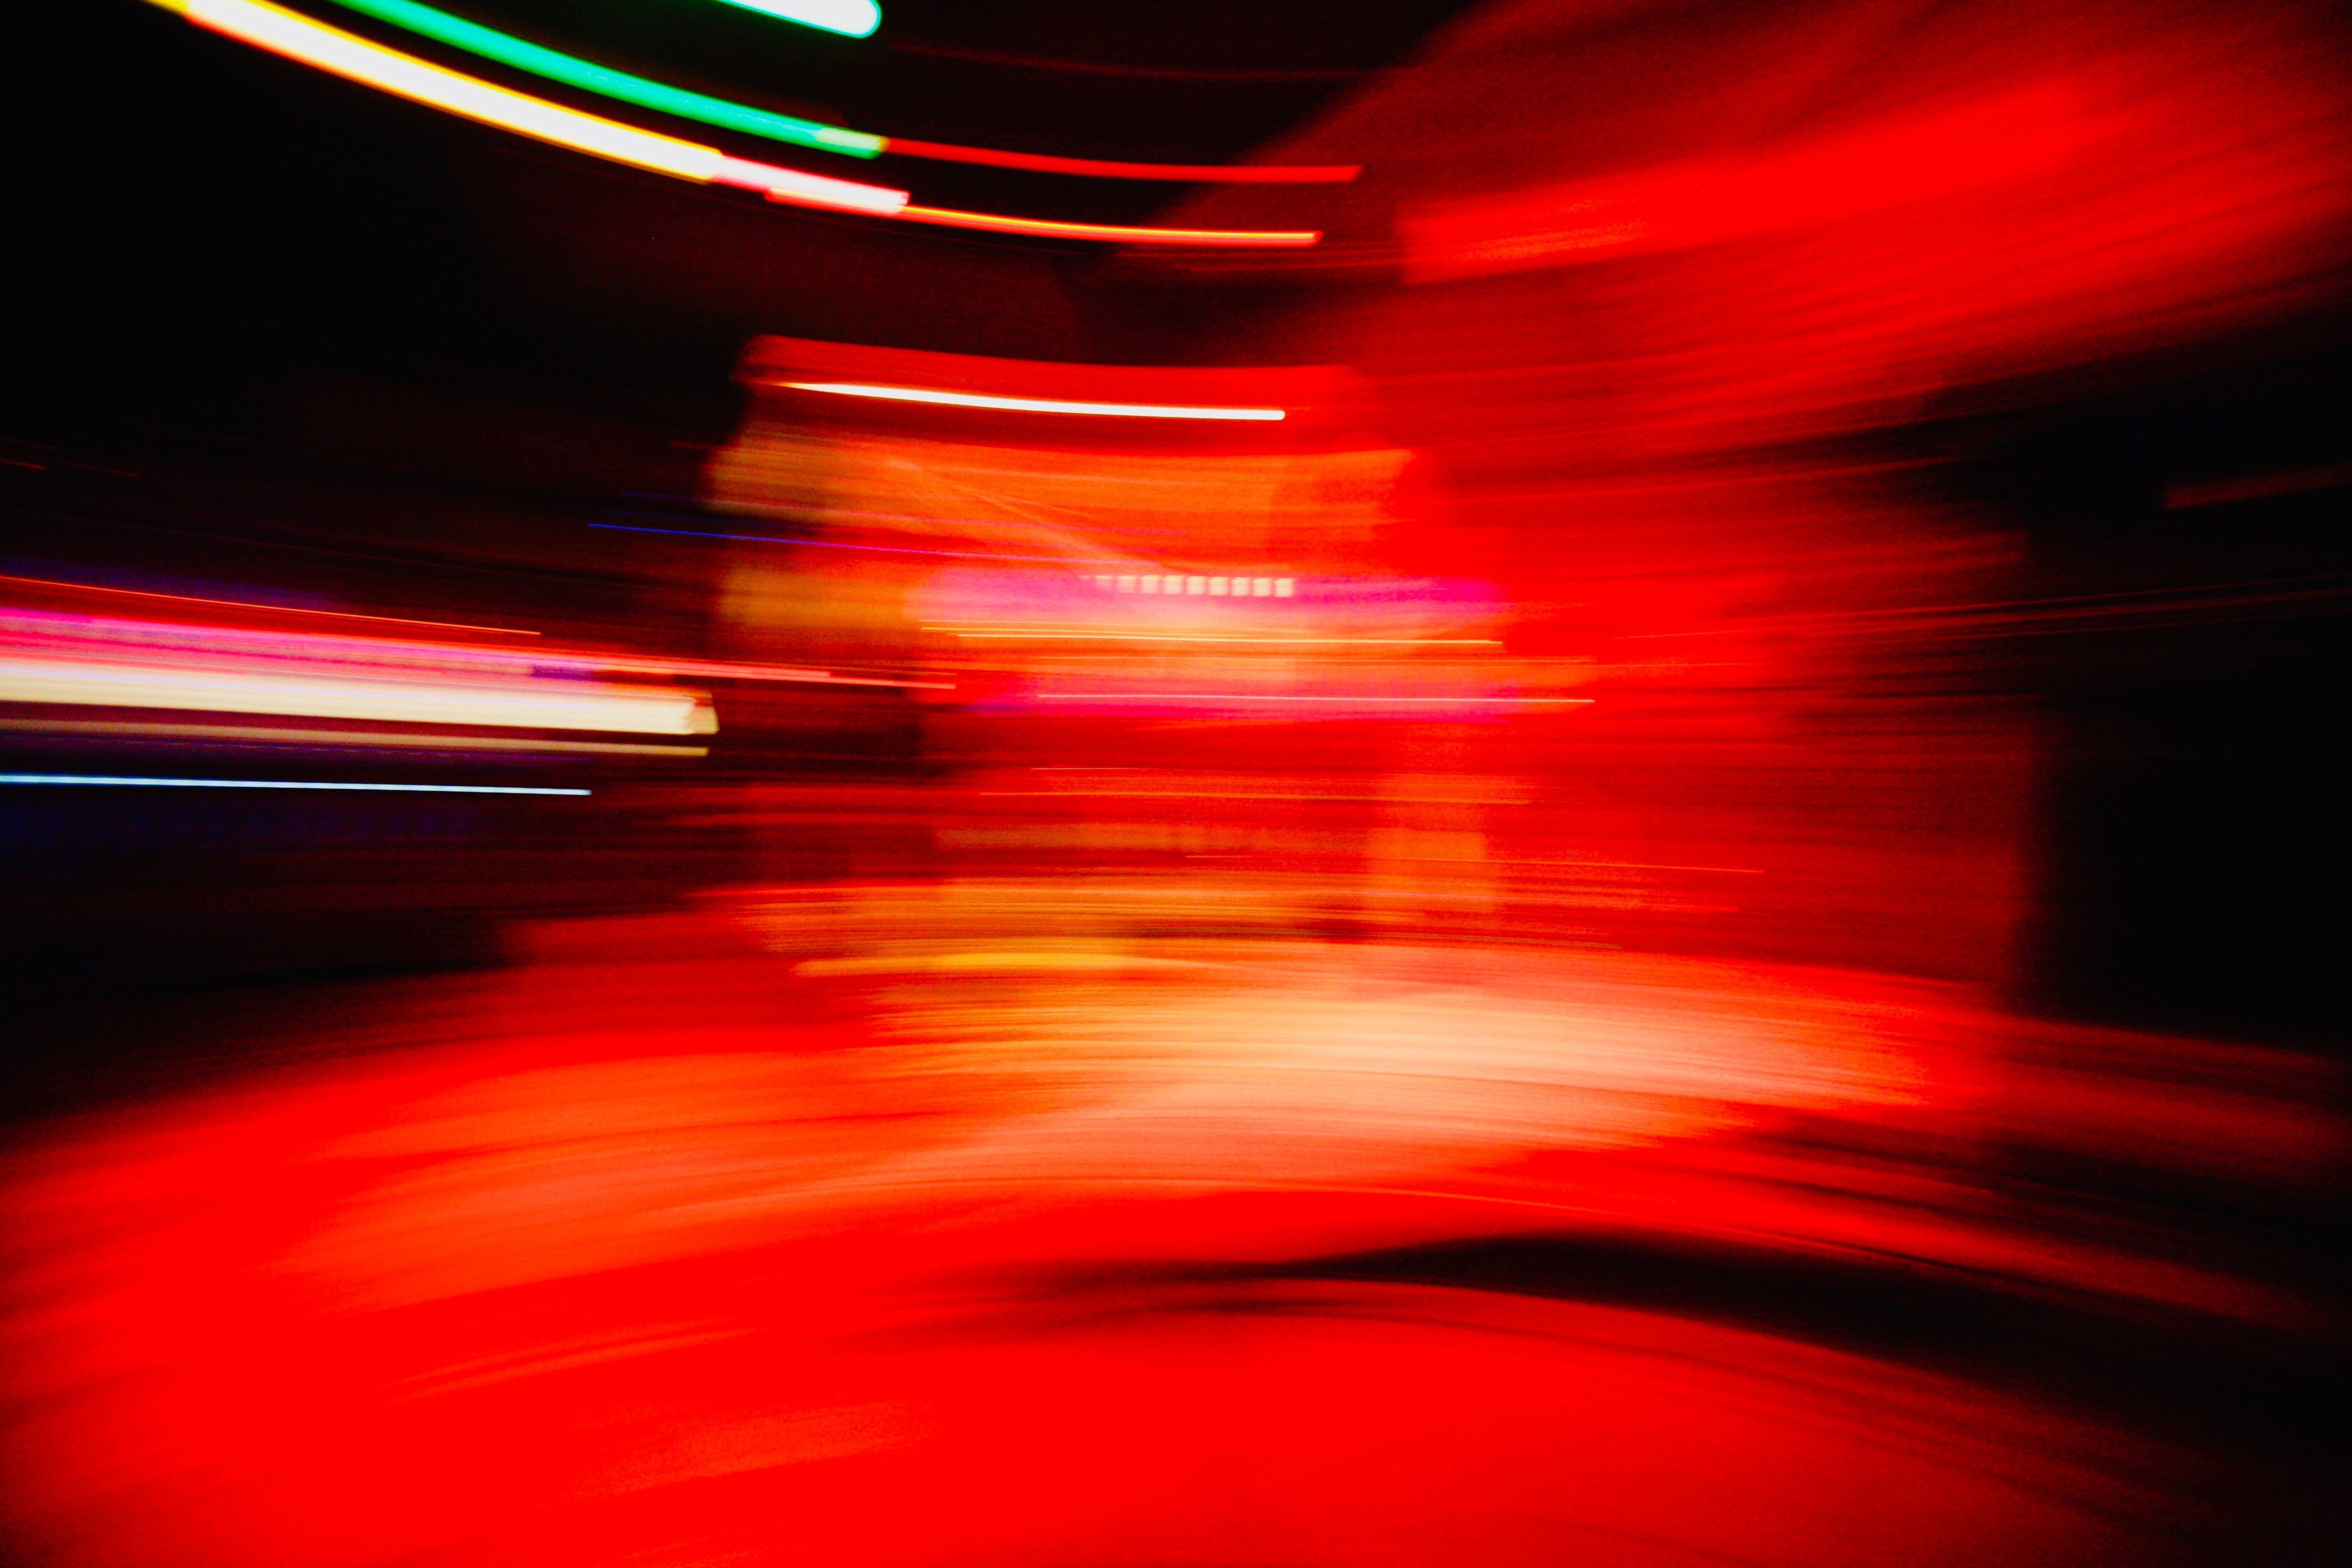 Free stock photo of abstract, light trails, lights, red